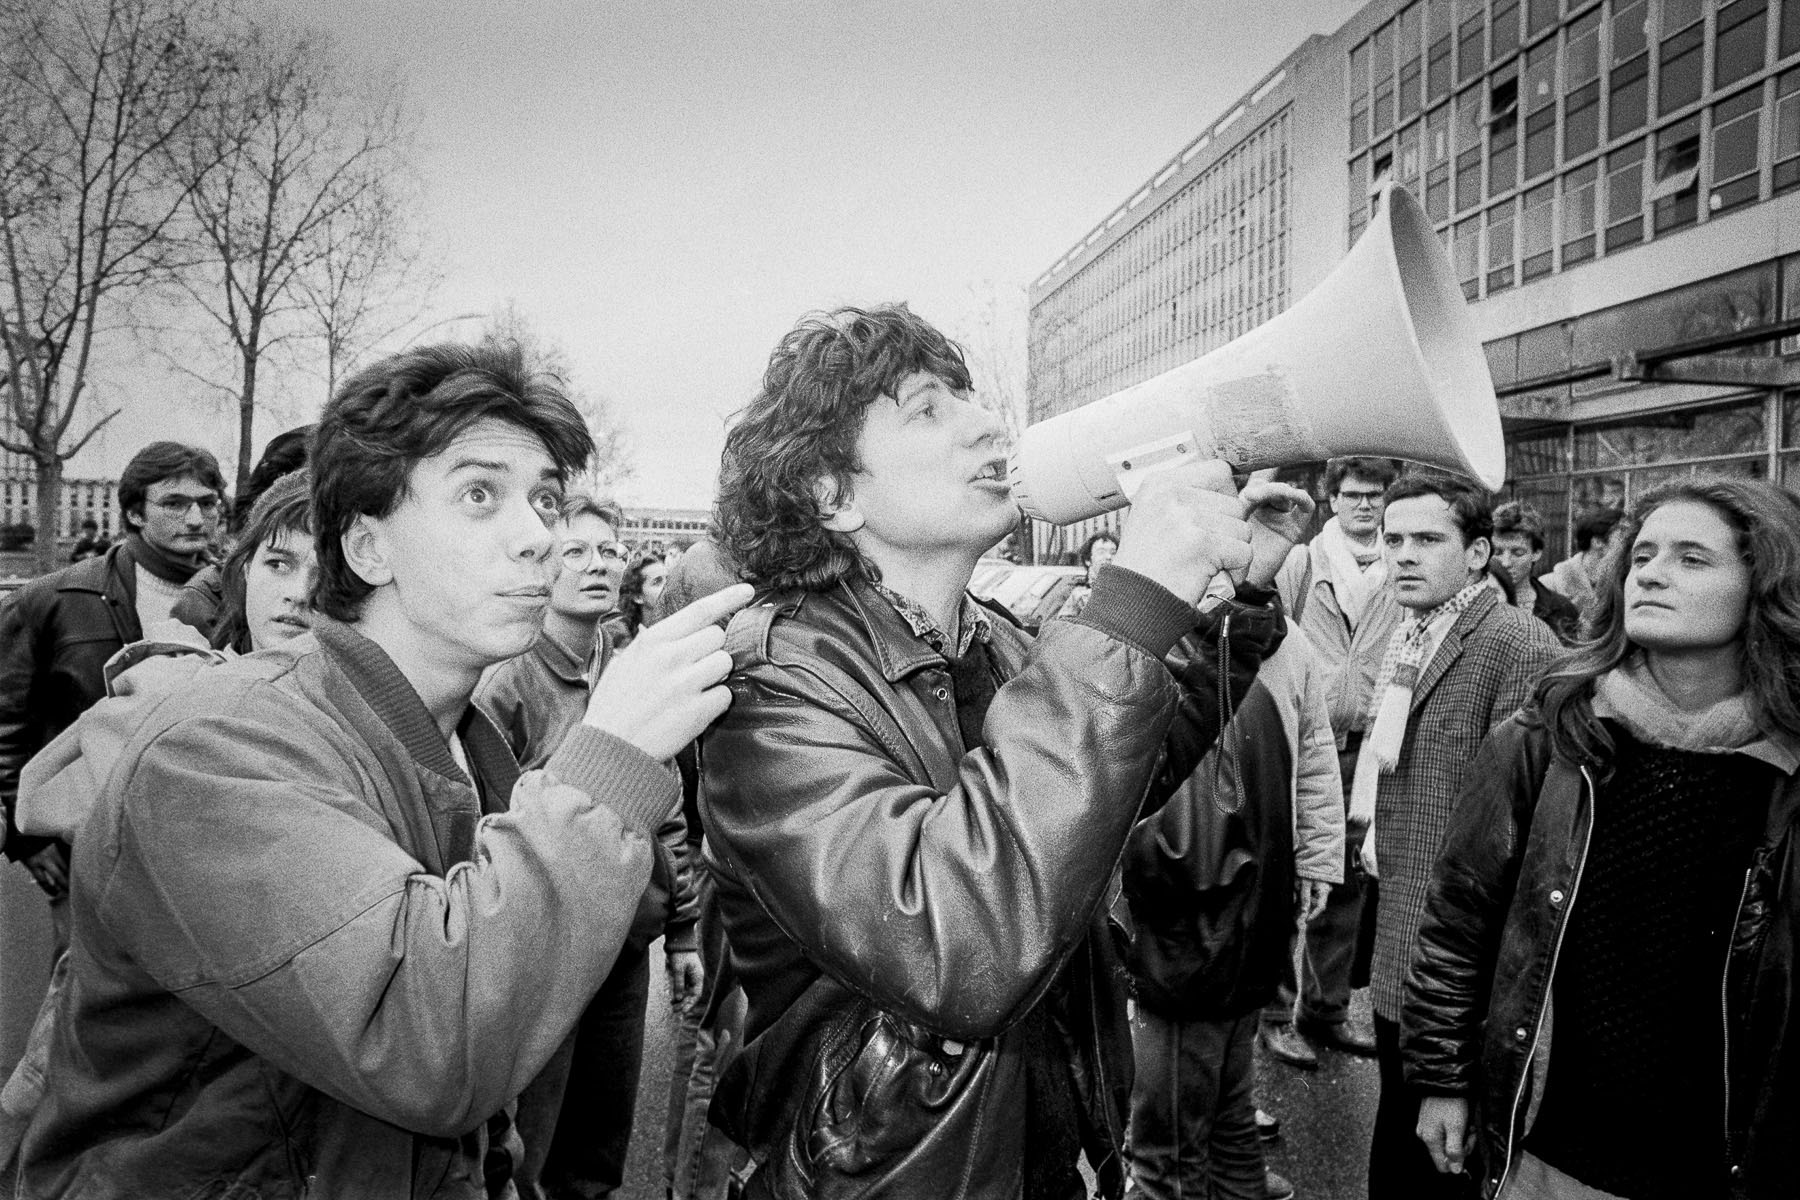 Students strike against Devaquet minister reform draft in Nanterre University on november 1986